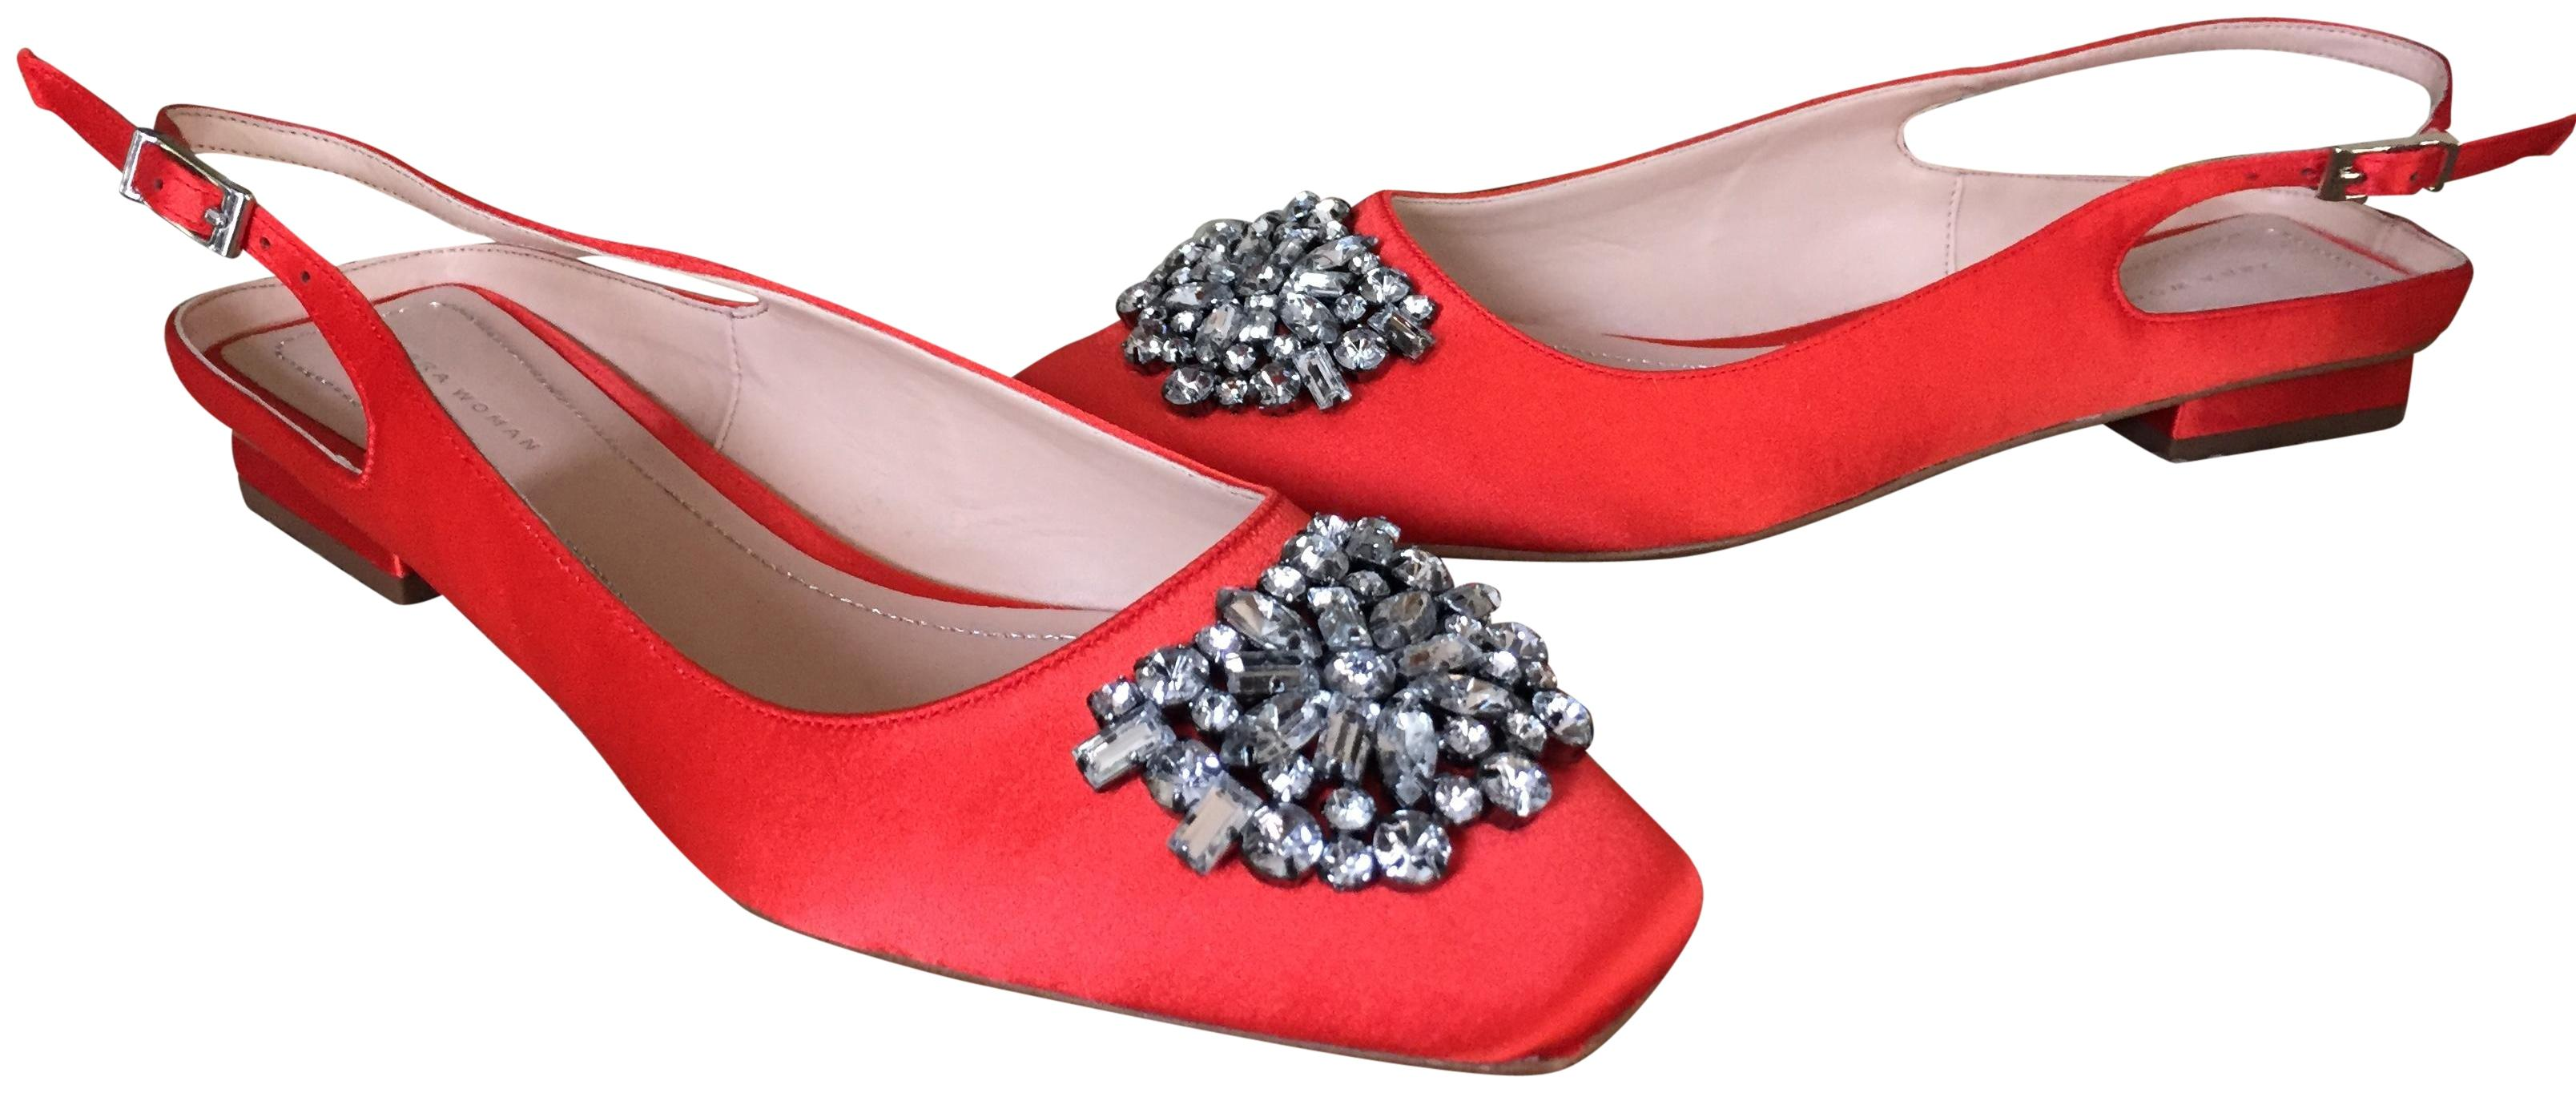 Zara Red Bright Satin Slingback Flats W/ Rhinestone Detail Formal Shoes Size US 7 Regular (M, B)